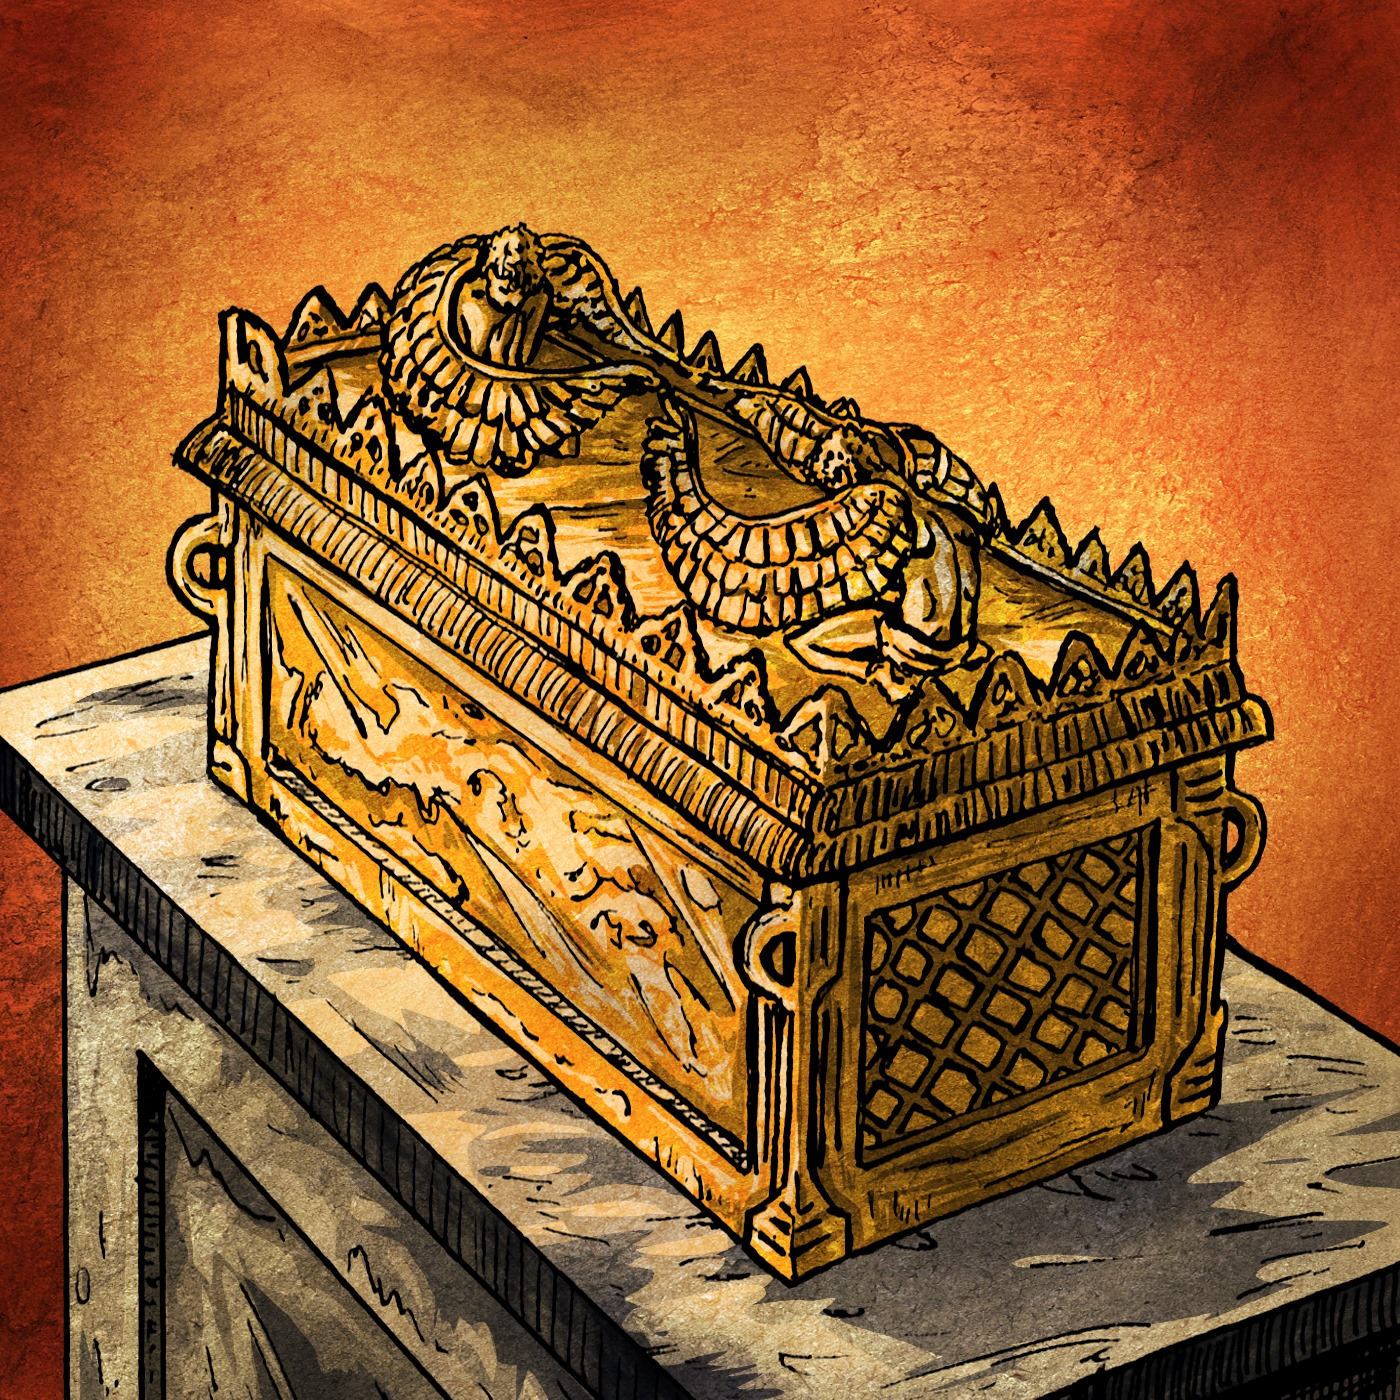 Episode #131- Does Ethiopia Have the Ark of the Covenant? (Part I)